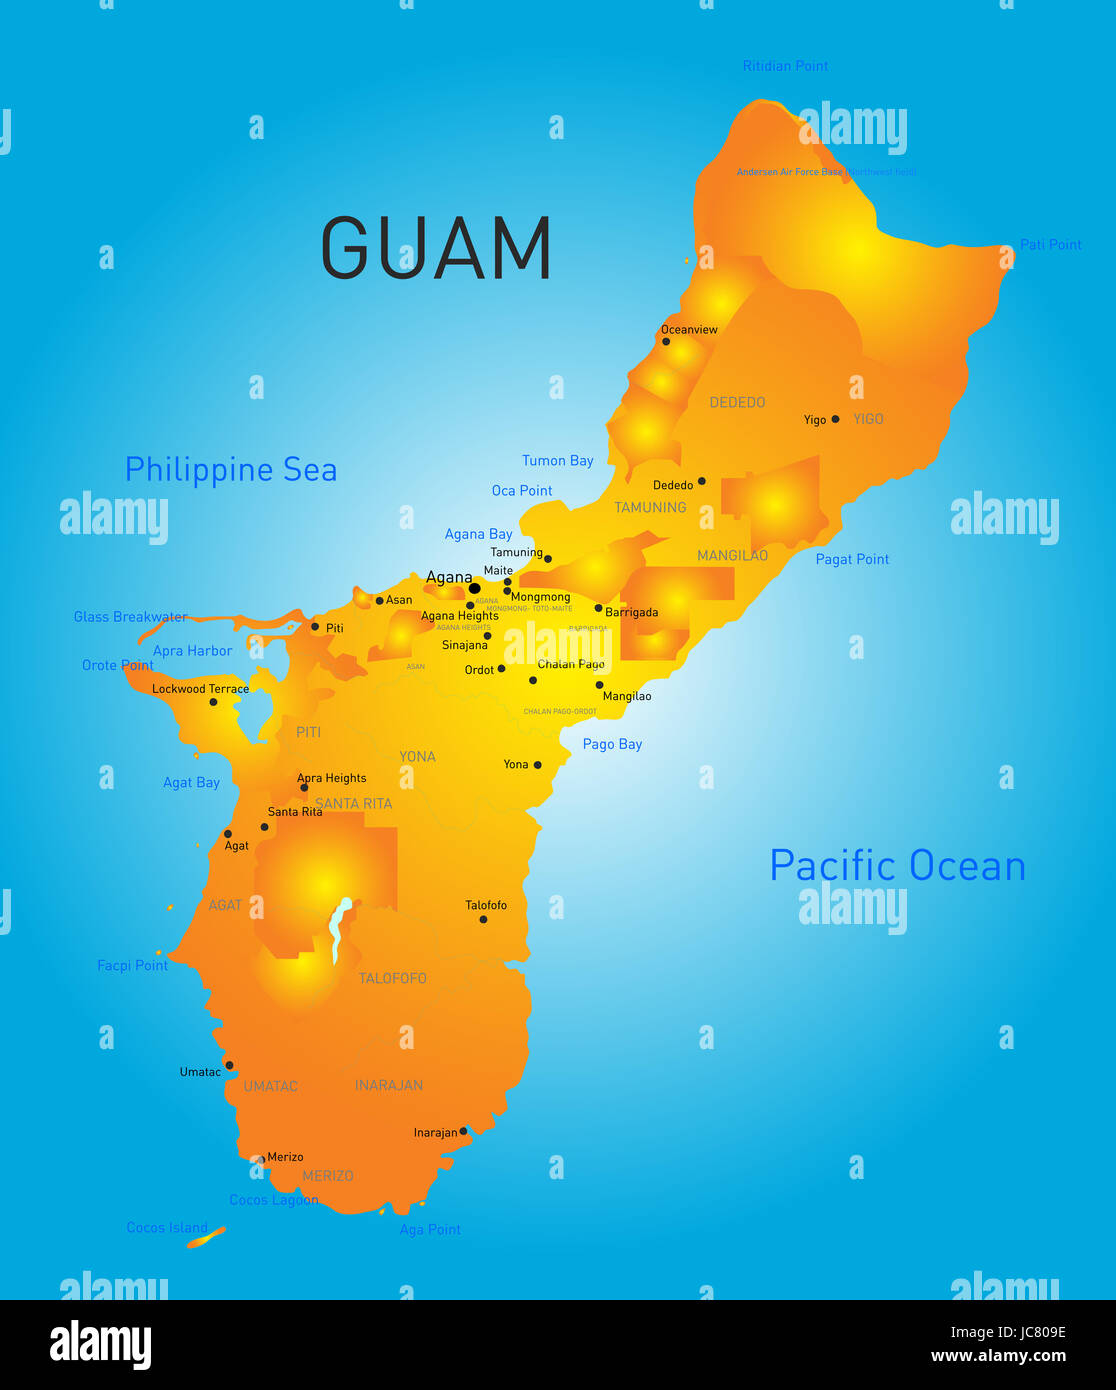 Guam Country Vector Color Map Stock Photo Royalty Free Image - Is guam a country